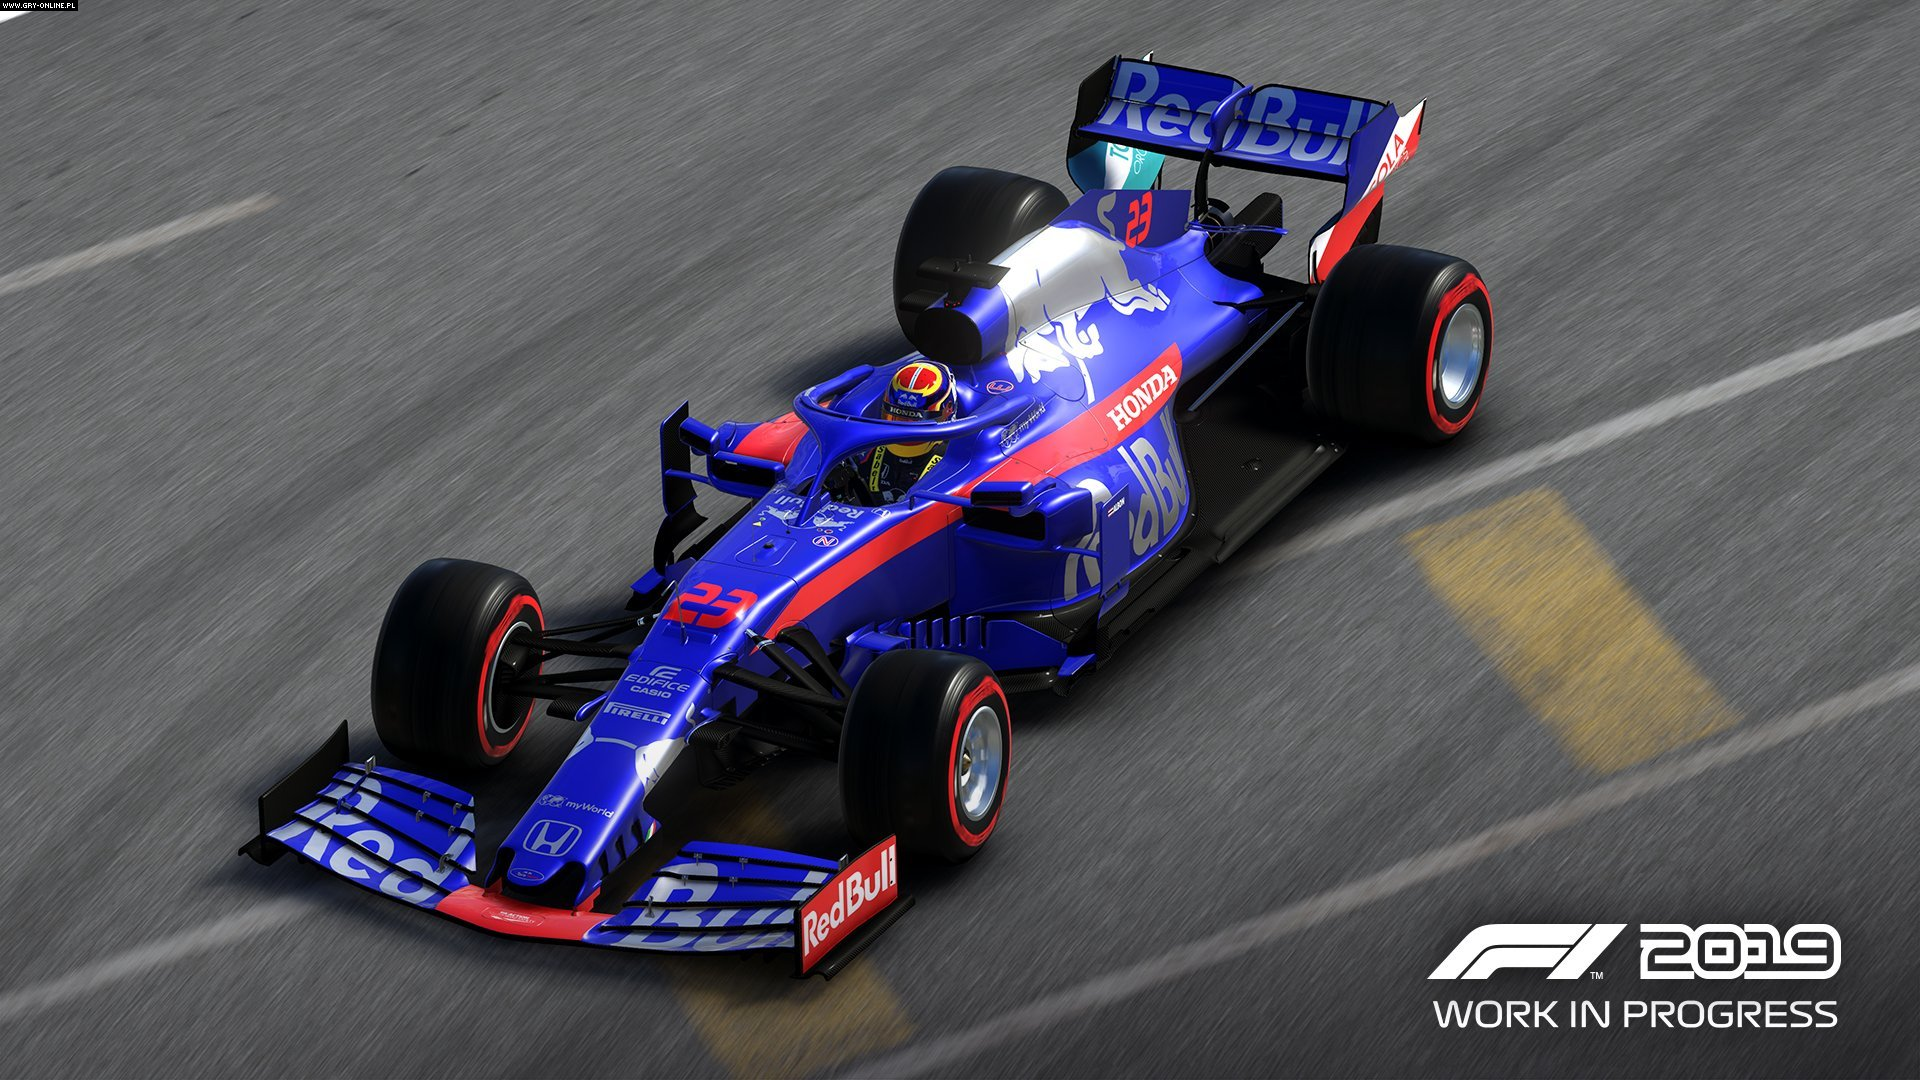 F1 2019 PC, PS4, XONE Games Image 74/104, Codemasters Software